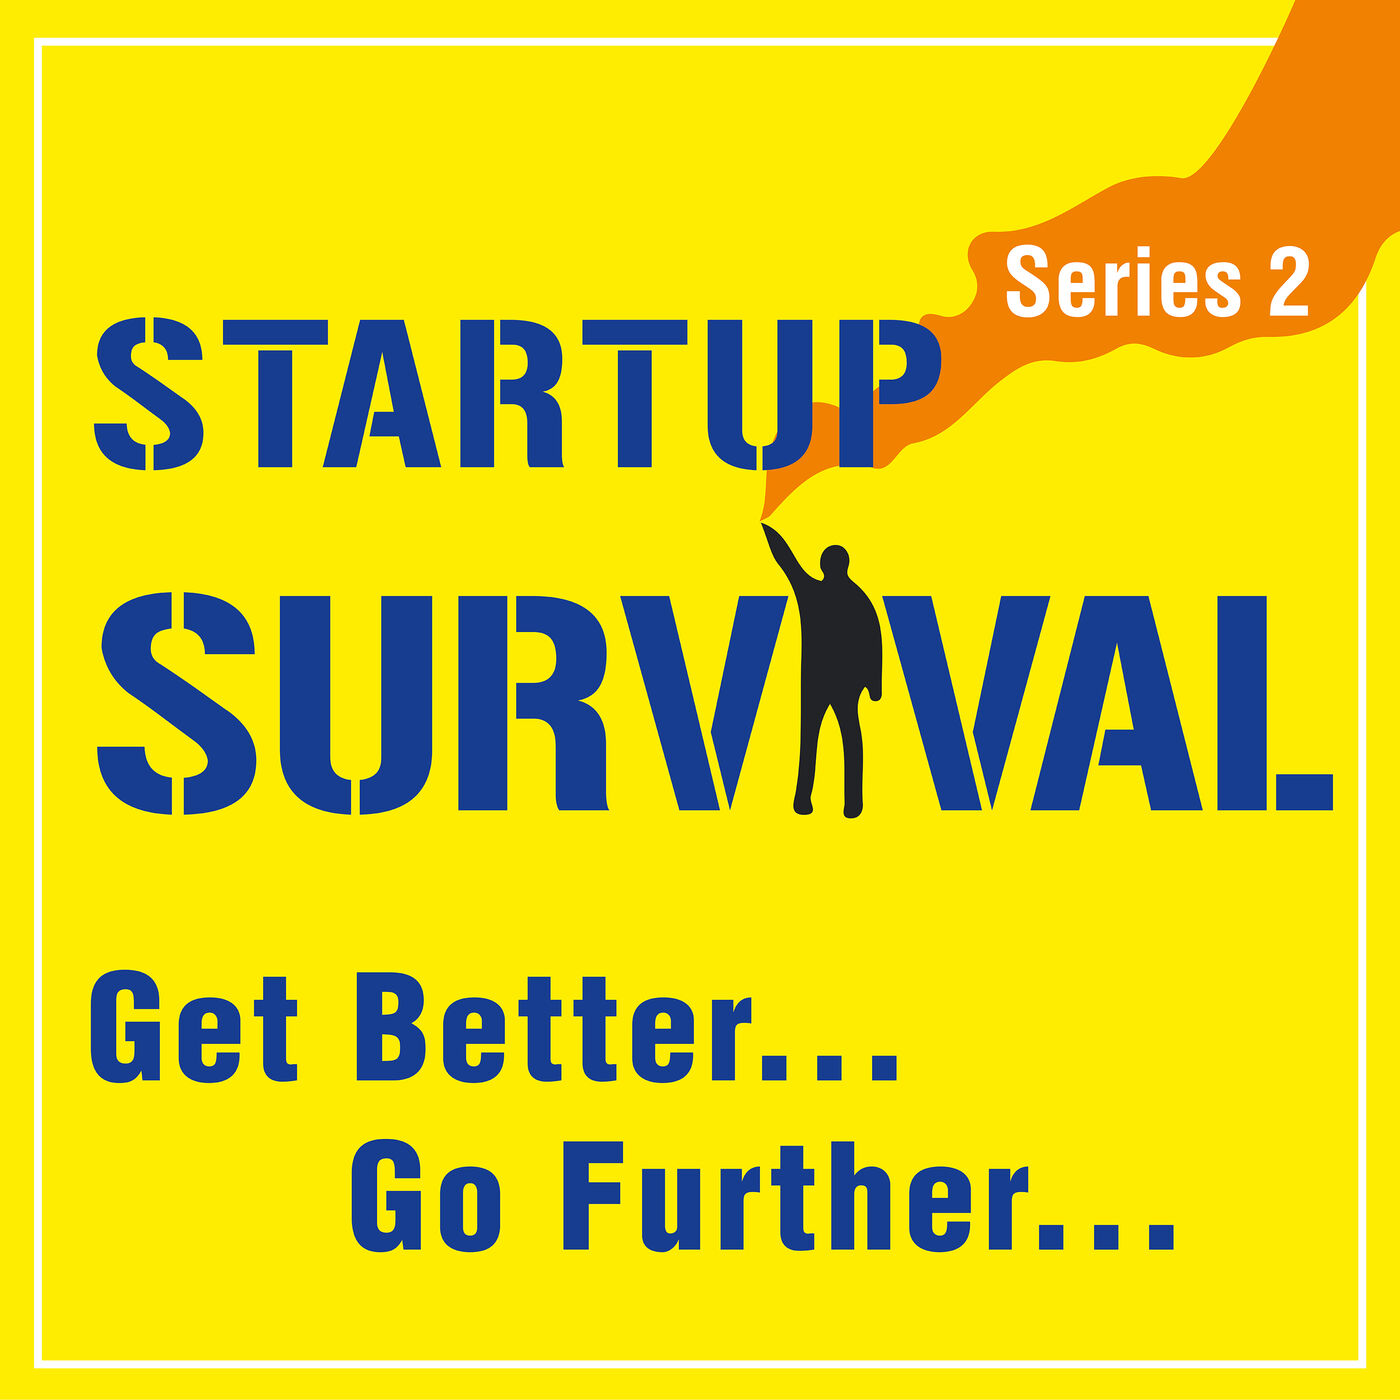 Episode 12 - Local to Global: Expand your Entrepreneurial Horizons